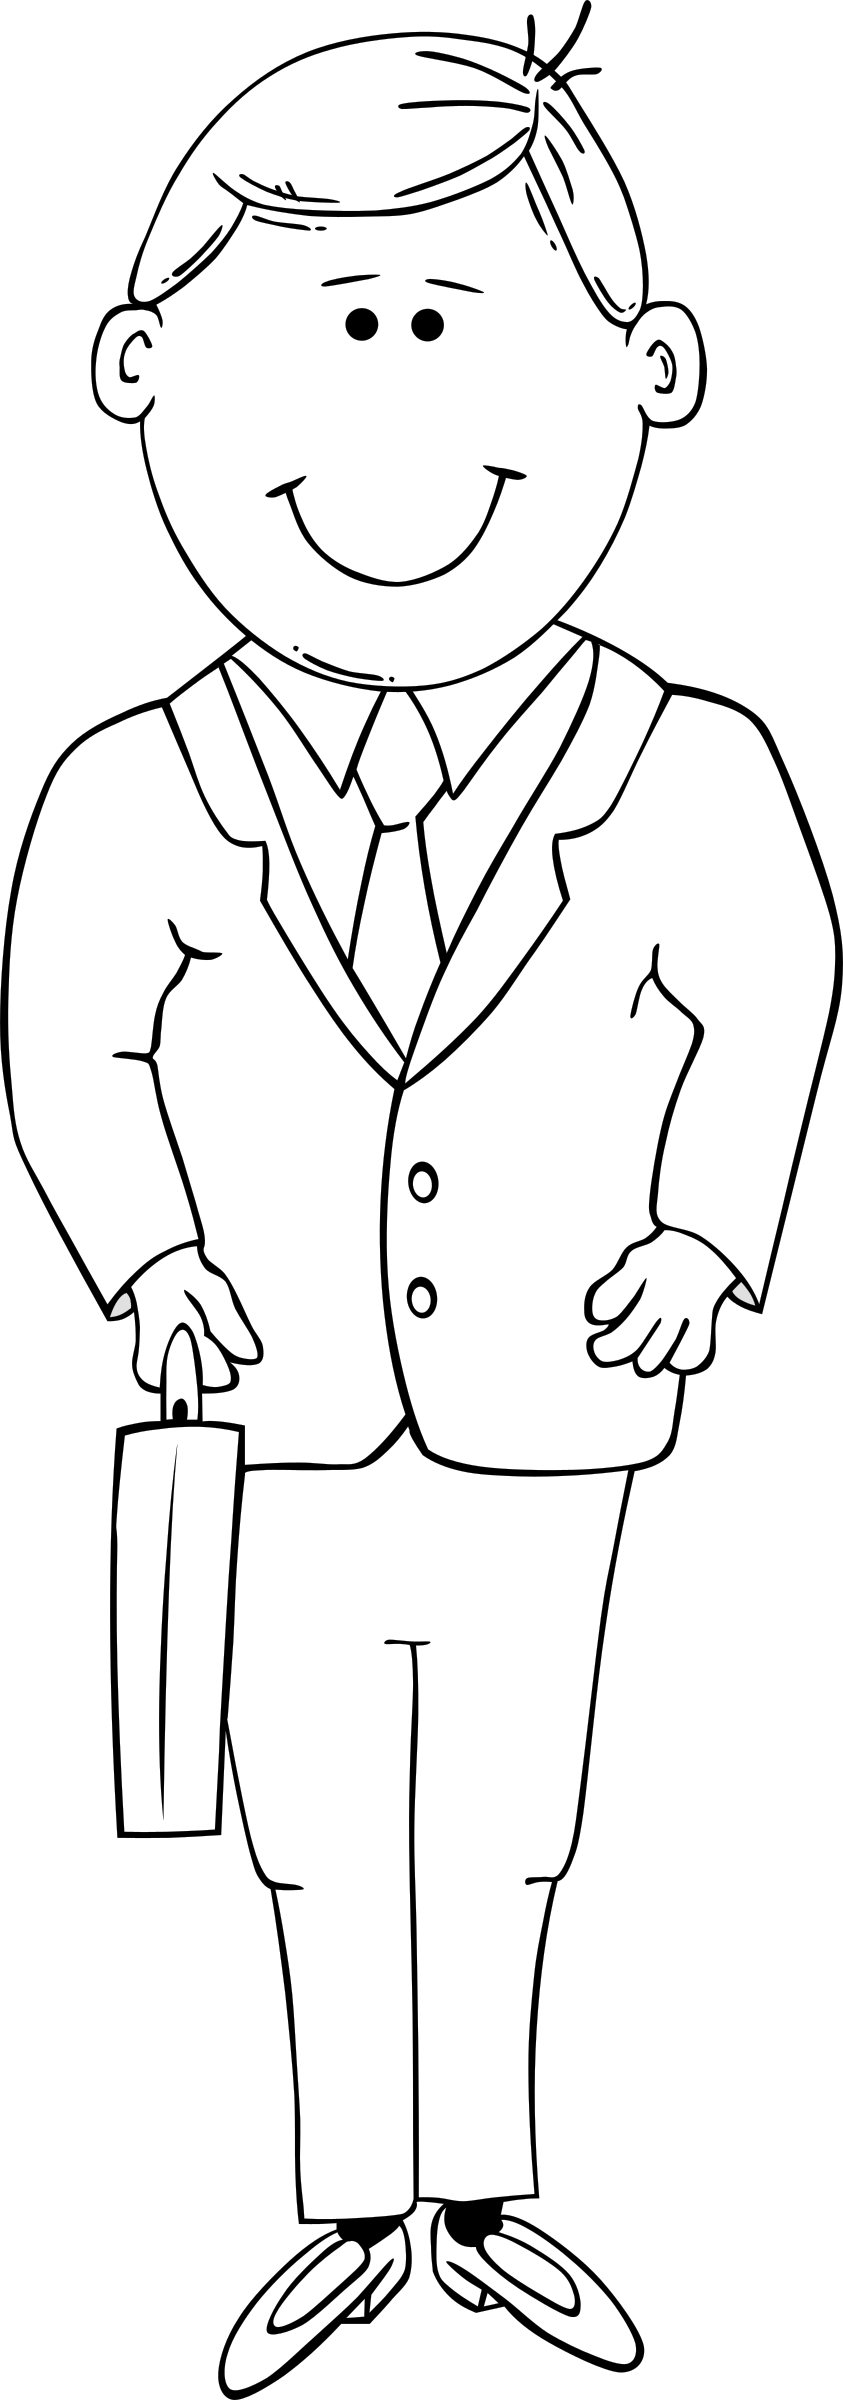 picture free stock G in suit big. Man clipart black and white